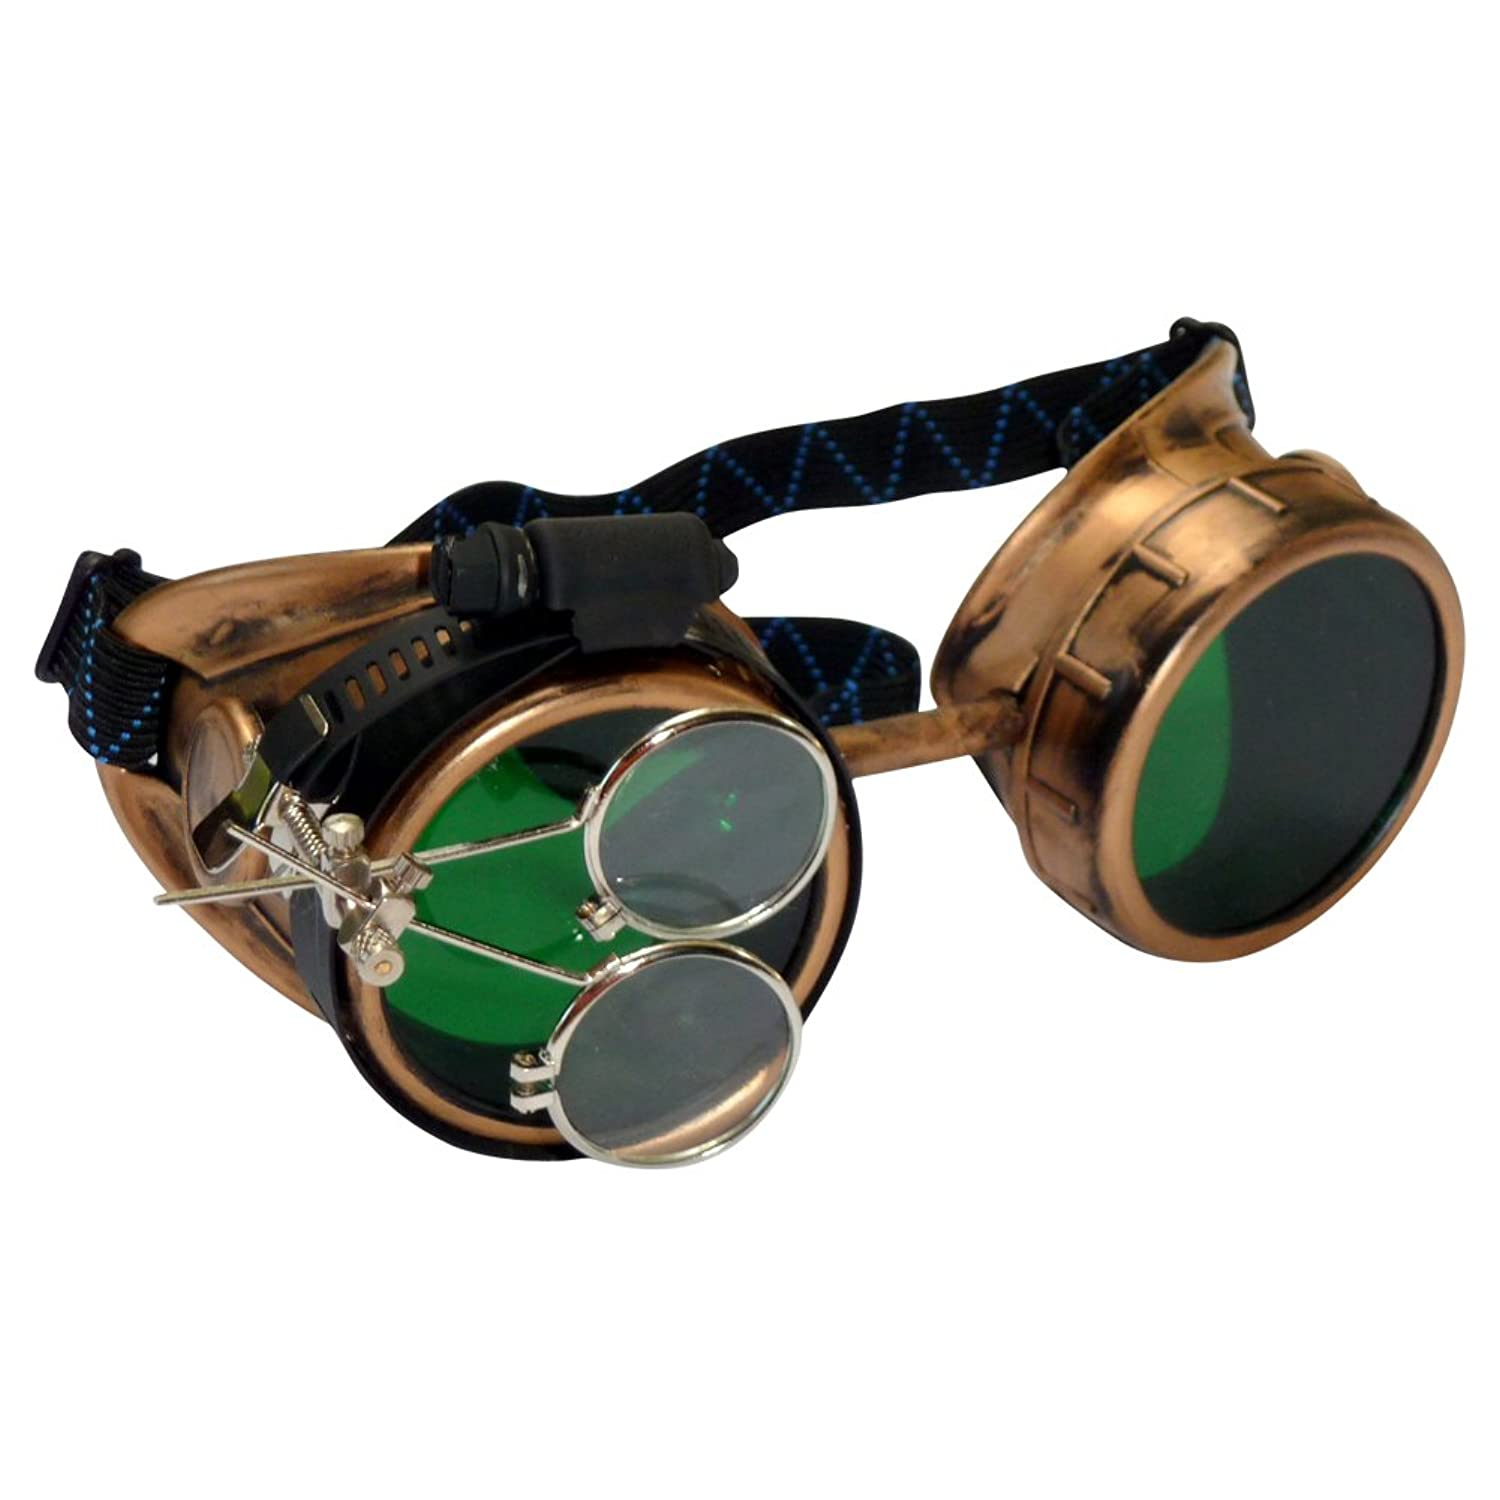 Men's Steampunk Goggles, Guns, Gadgets & Watches Steampunk Victorian Goggles Glasses gold green magnifying lens $24.99 AT vintagedancer.com